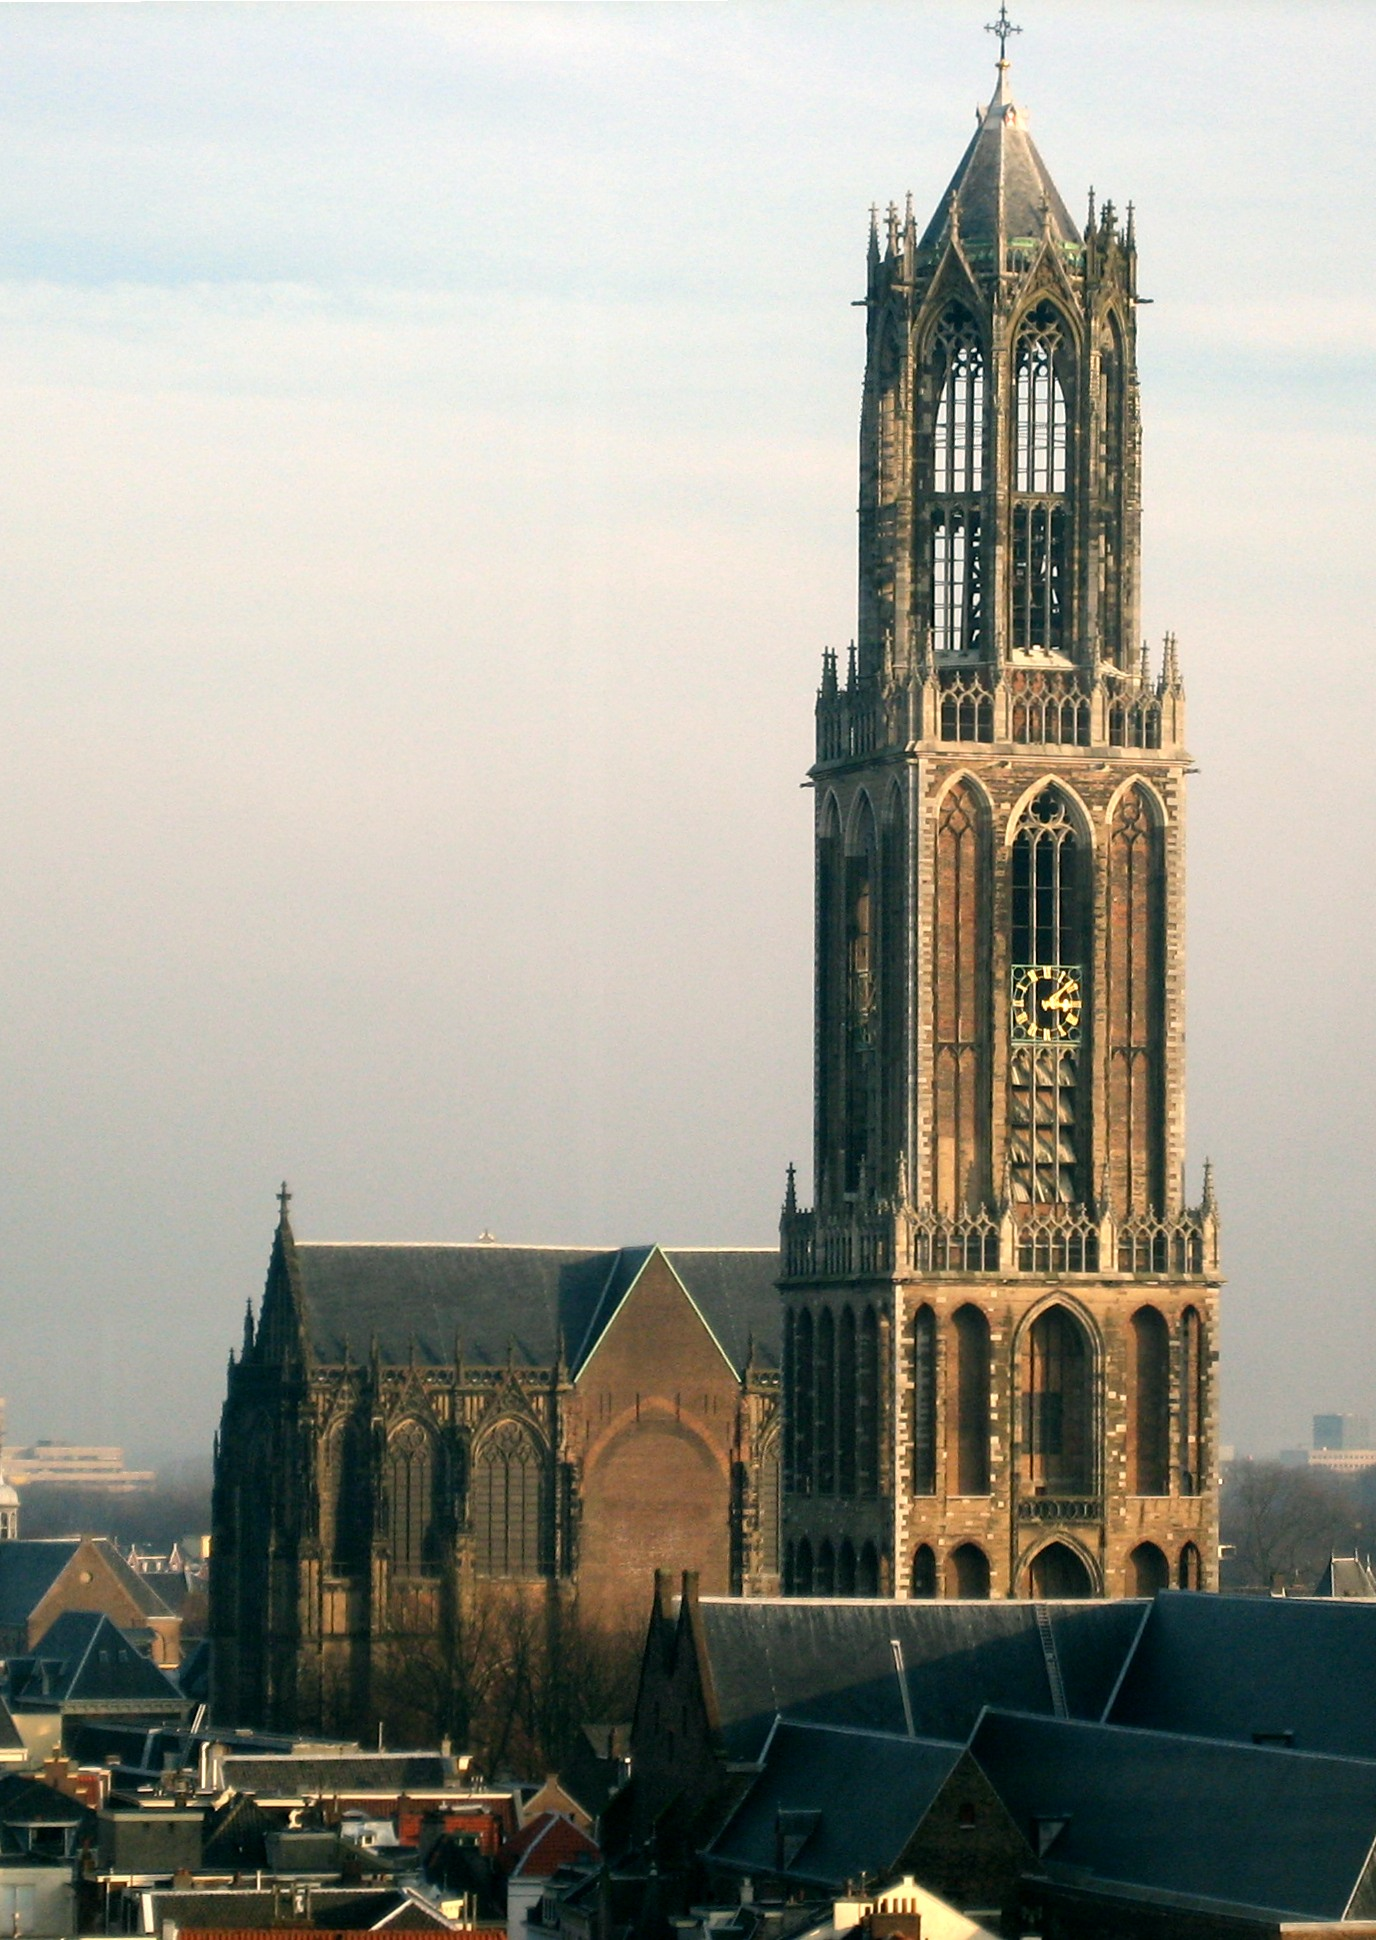 The Domkerk, Utrecht's most majestic and historic icon, will finally be part of LGW